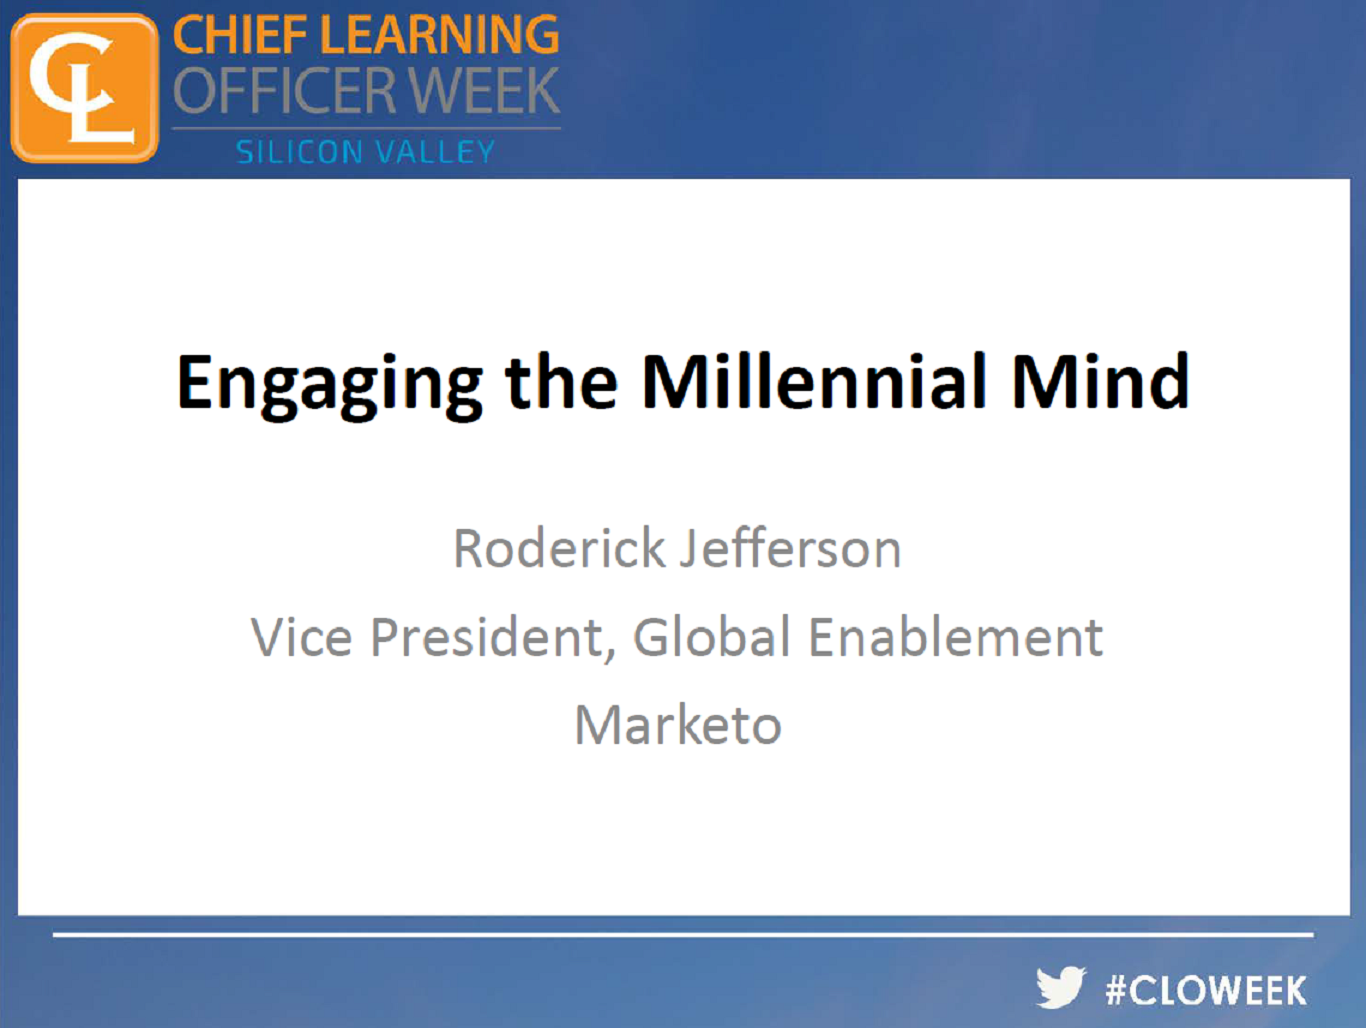 Engaging the Millennial Mind